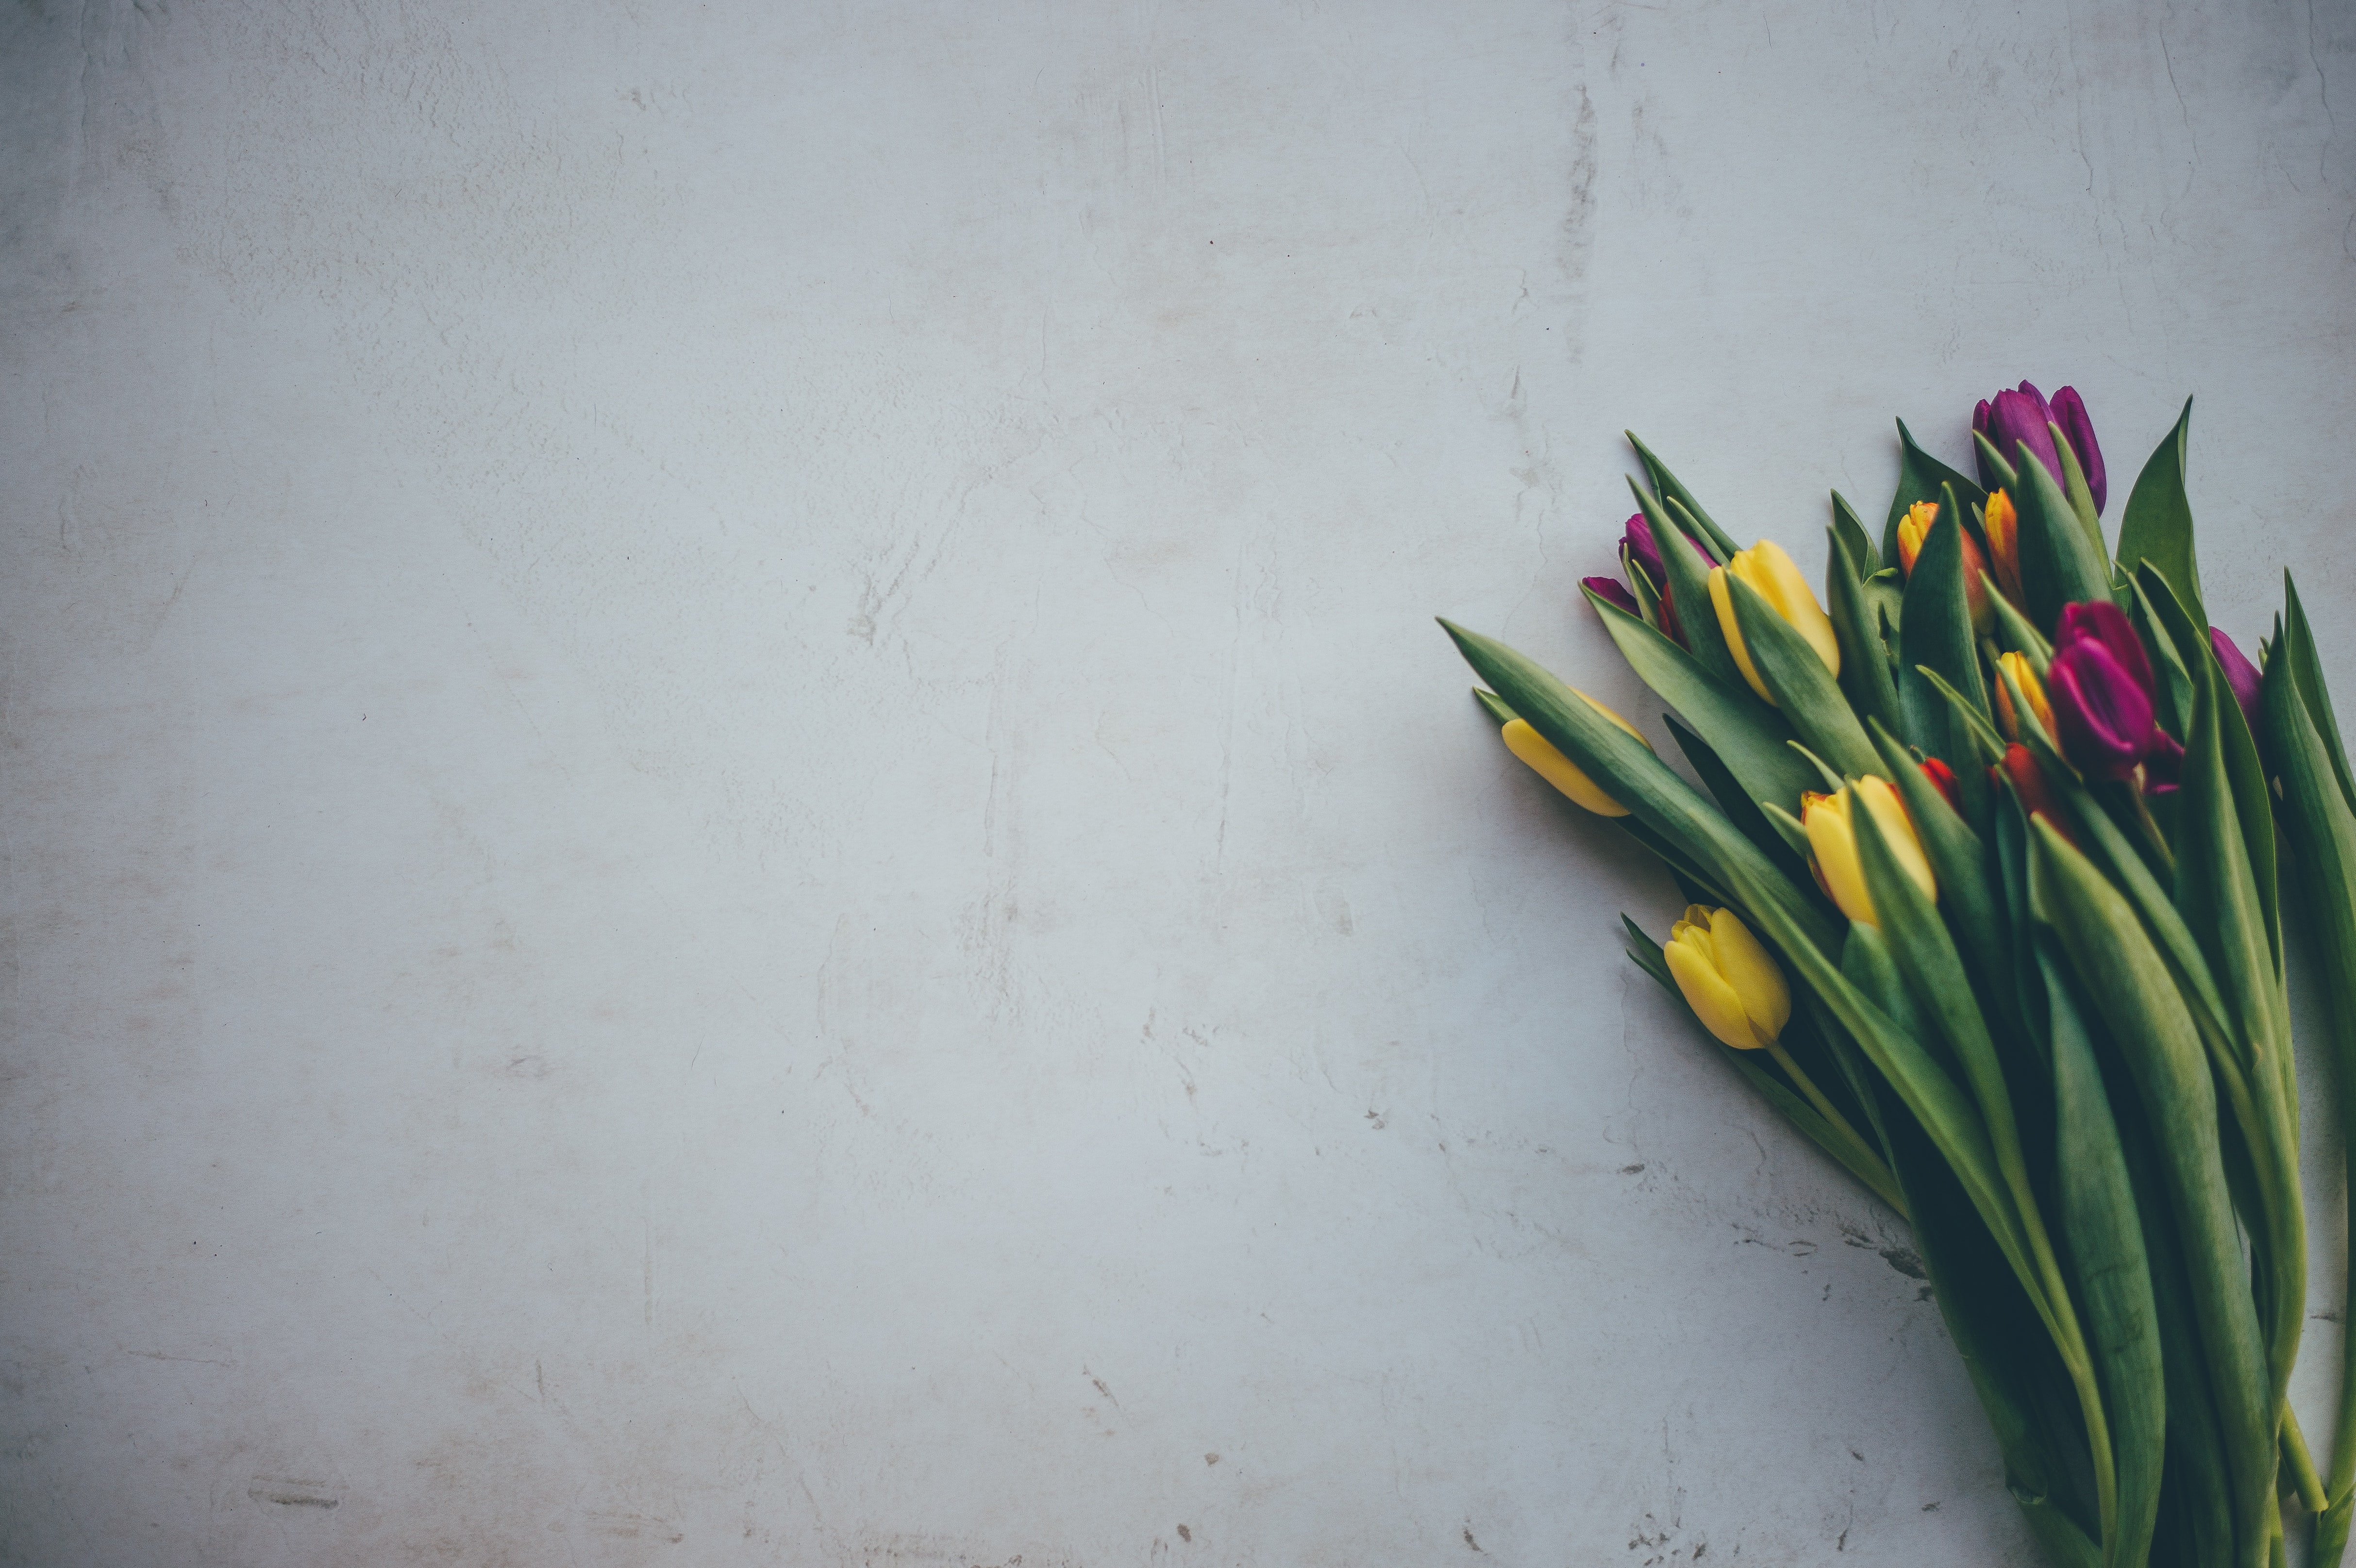 yellow and pink tulip flowers on white surface